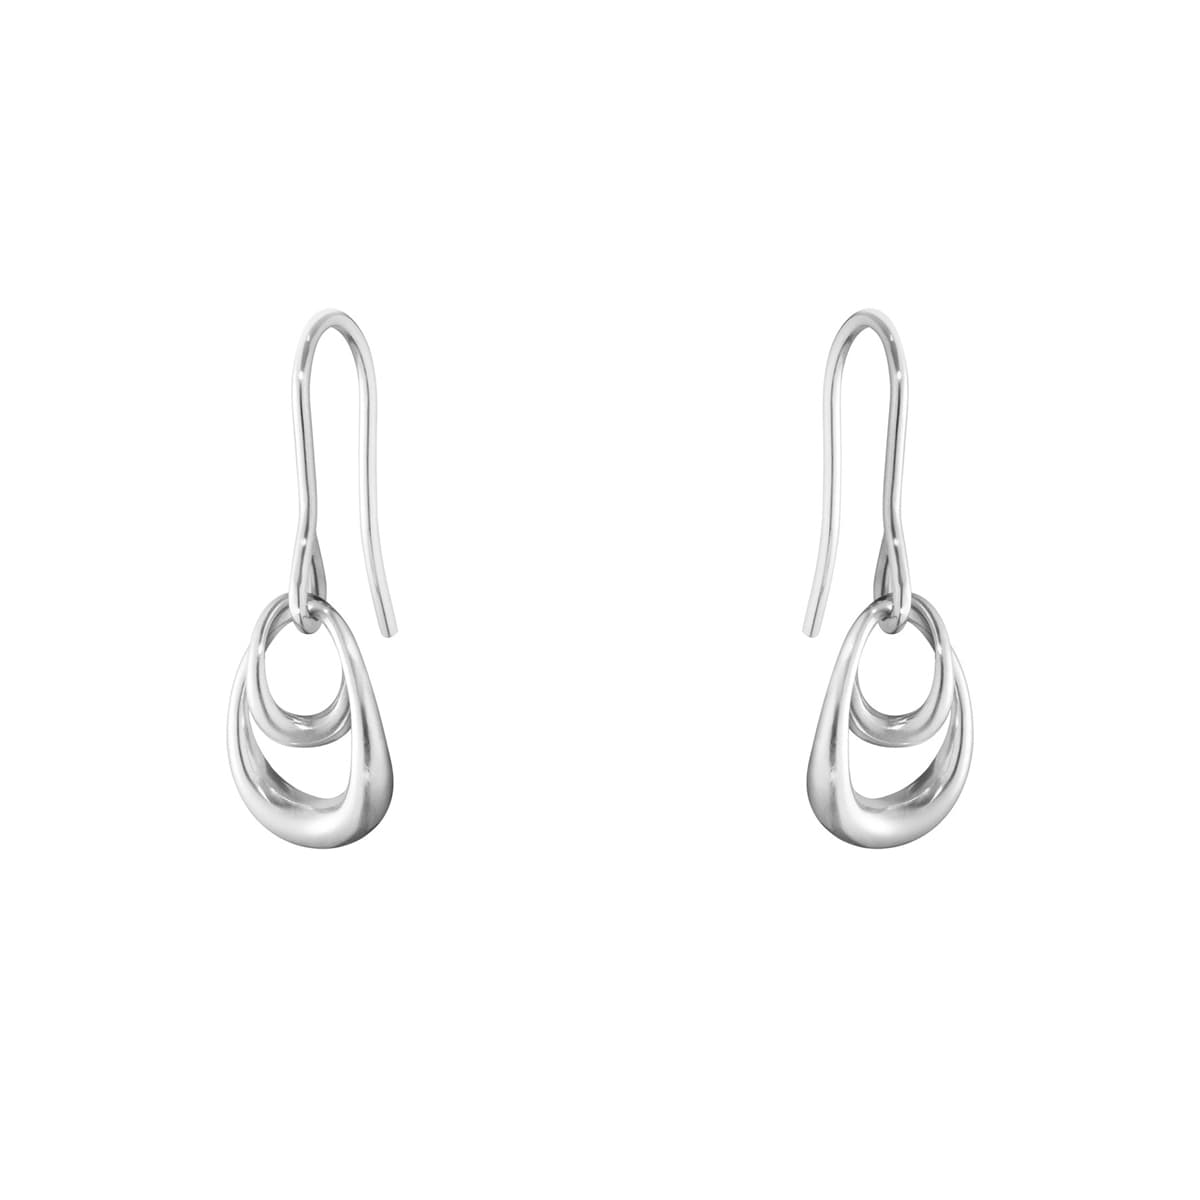 Georg_Jensen_10012312_OFFSPRING_EARRINGS_Hos_Jarl_Sandin